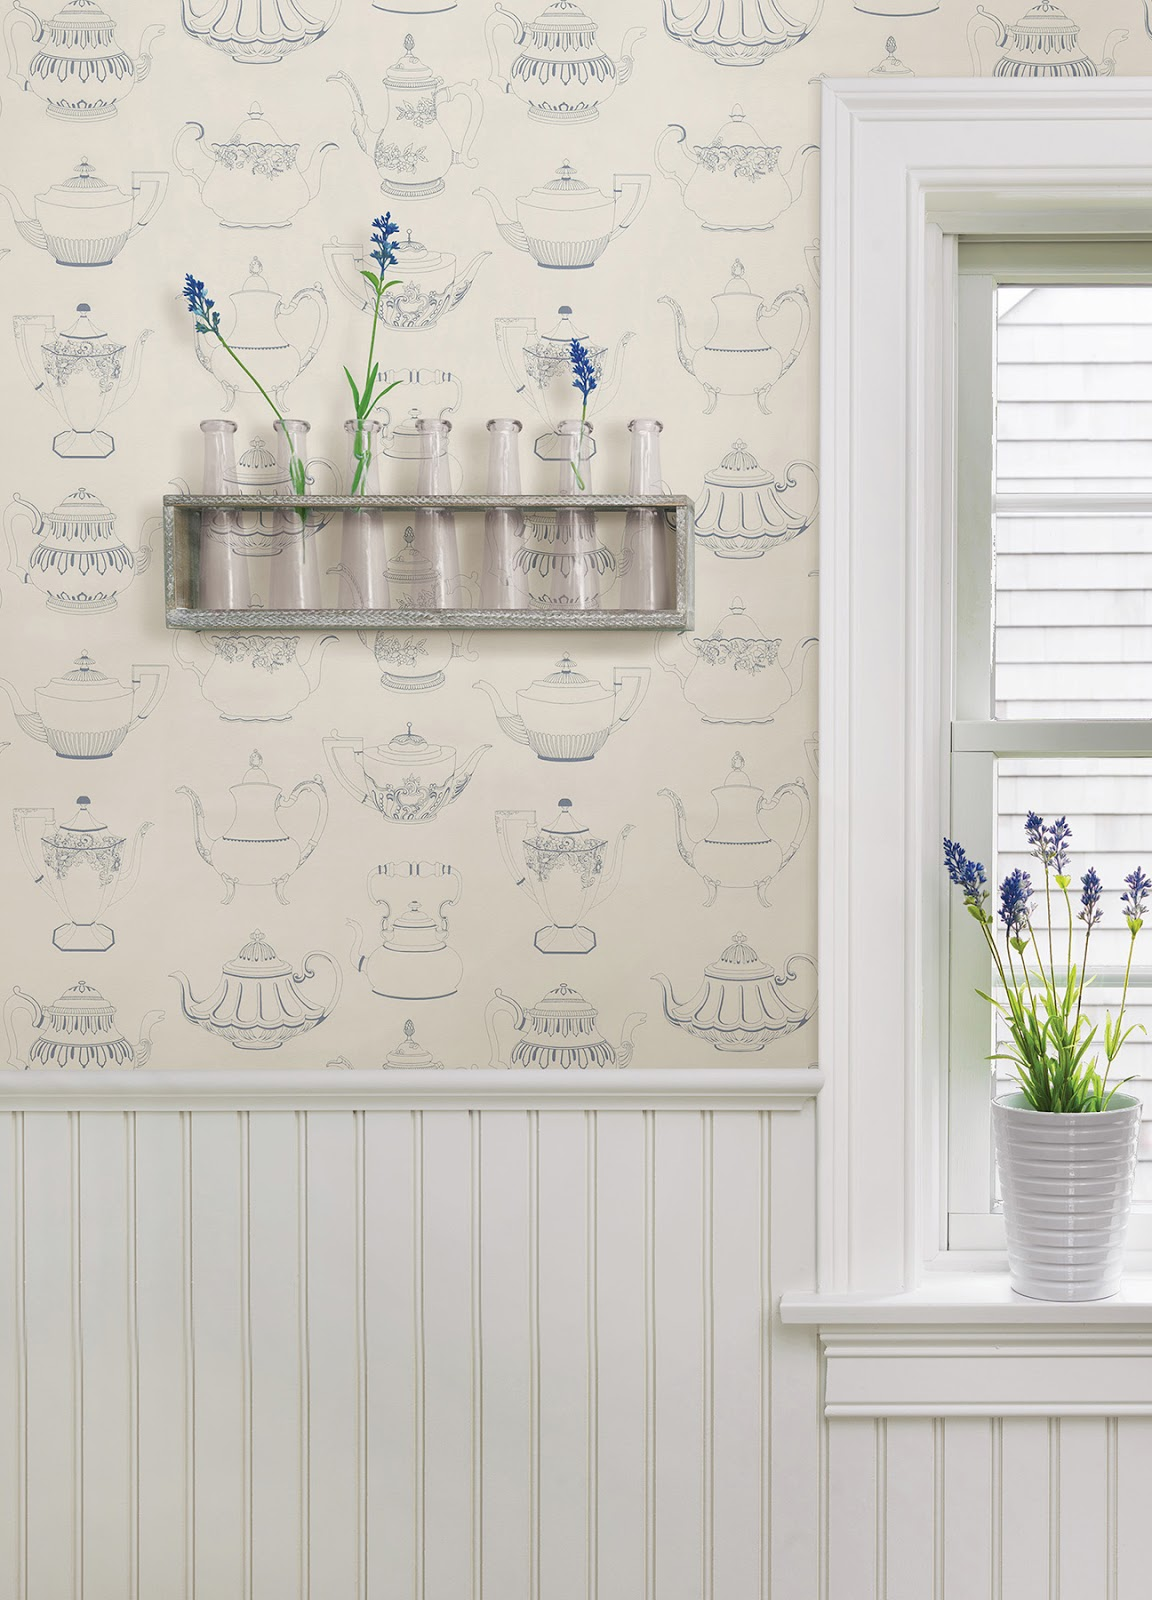 https://www.wallcoveringsforless.com/shoppingcart/prodlist1.CFM?page=_prod_detail.cfm&product_id=42774&startrow=13&search=347-&pagereturn=_search.cfm